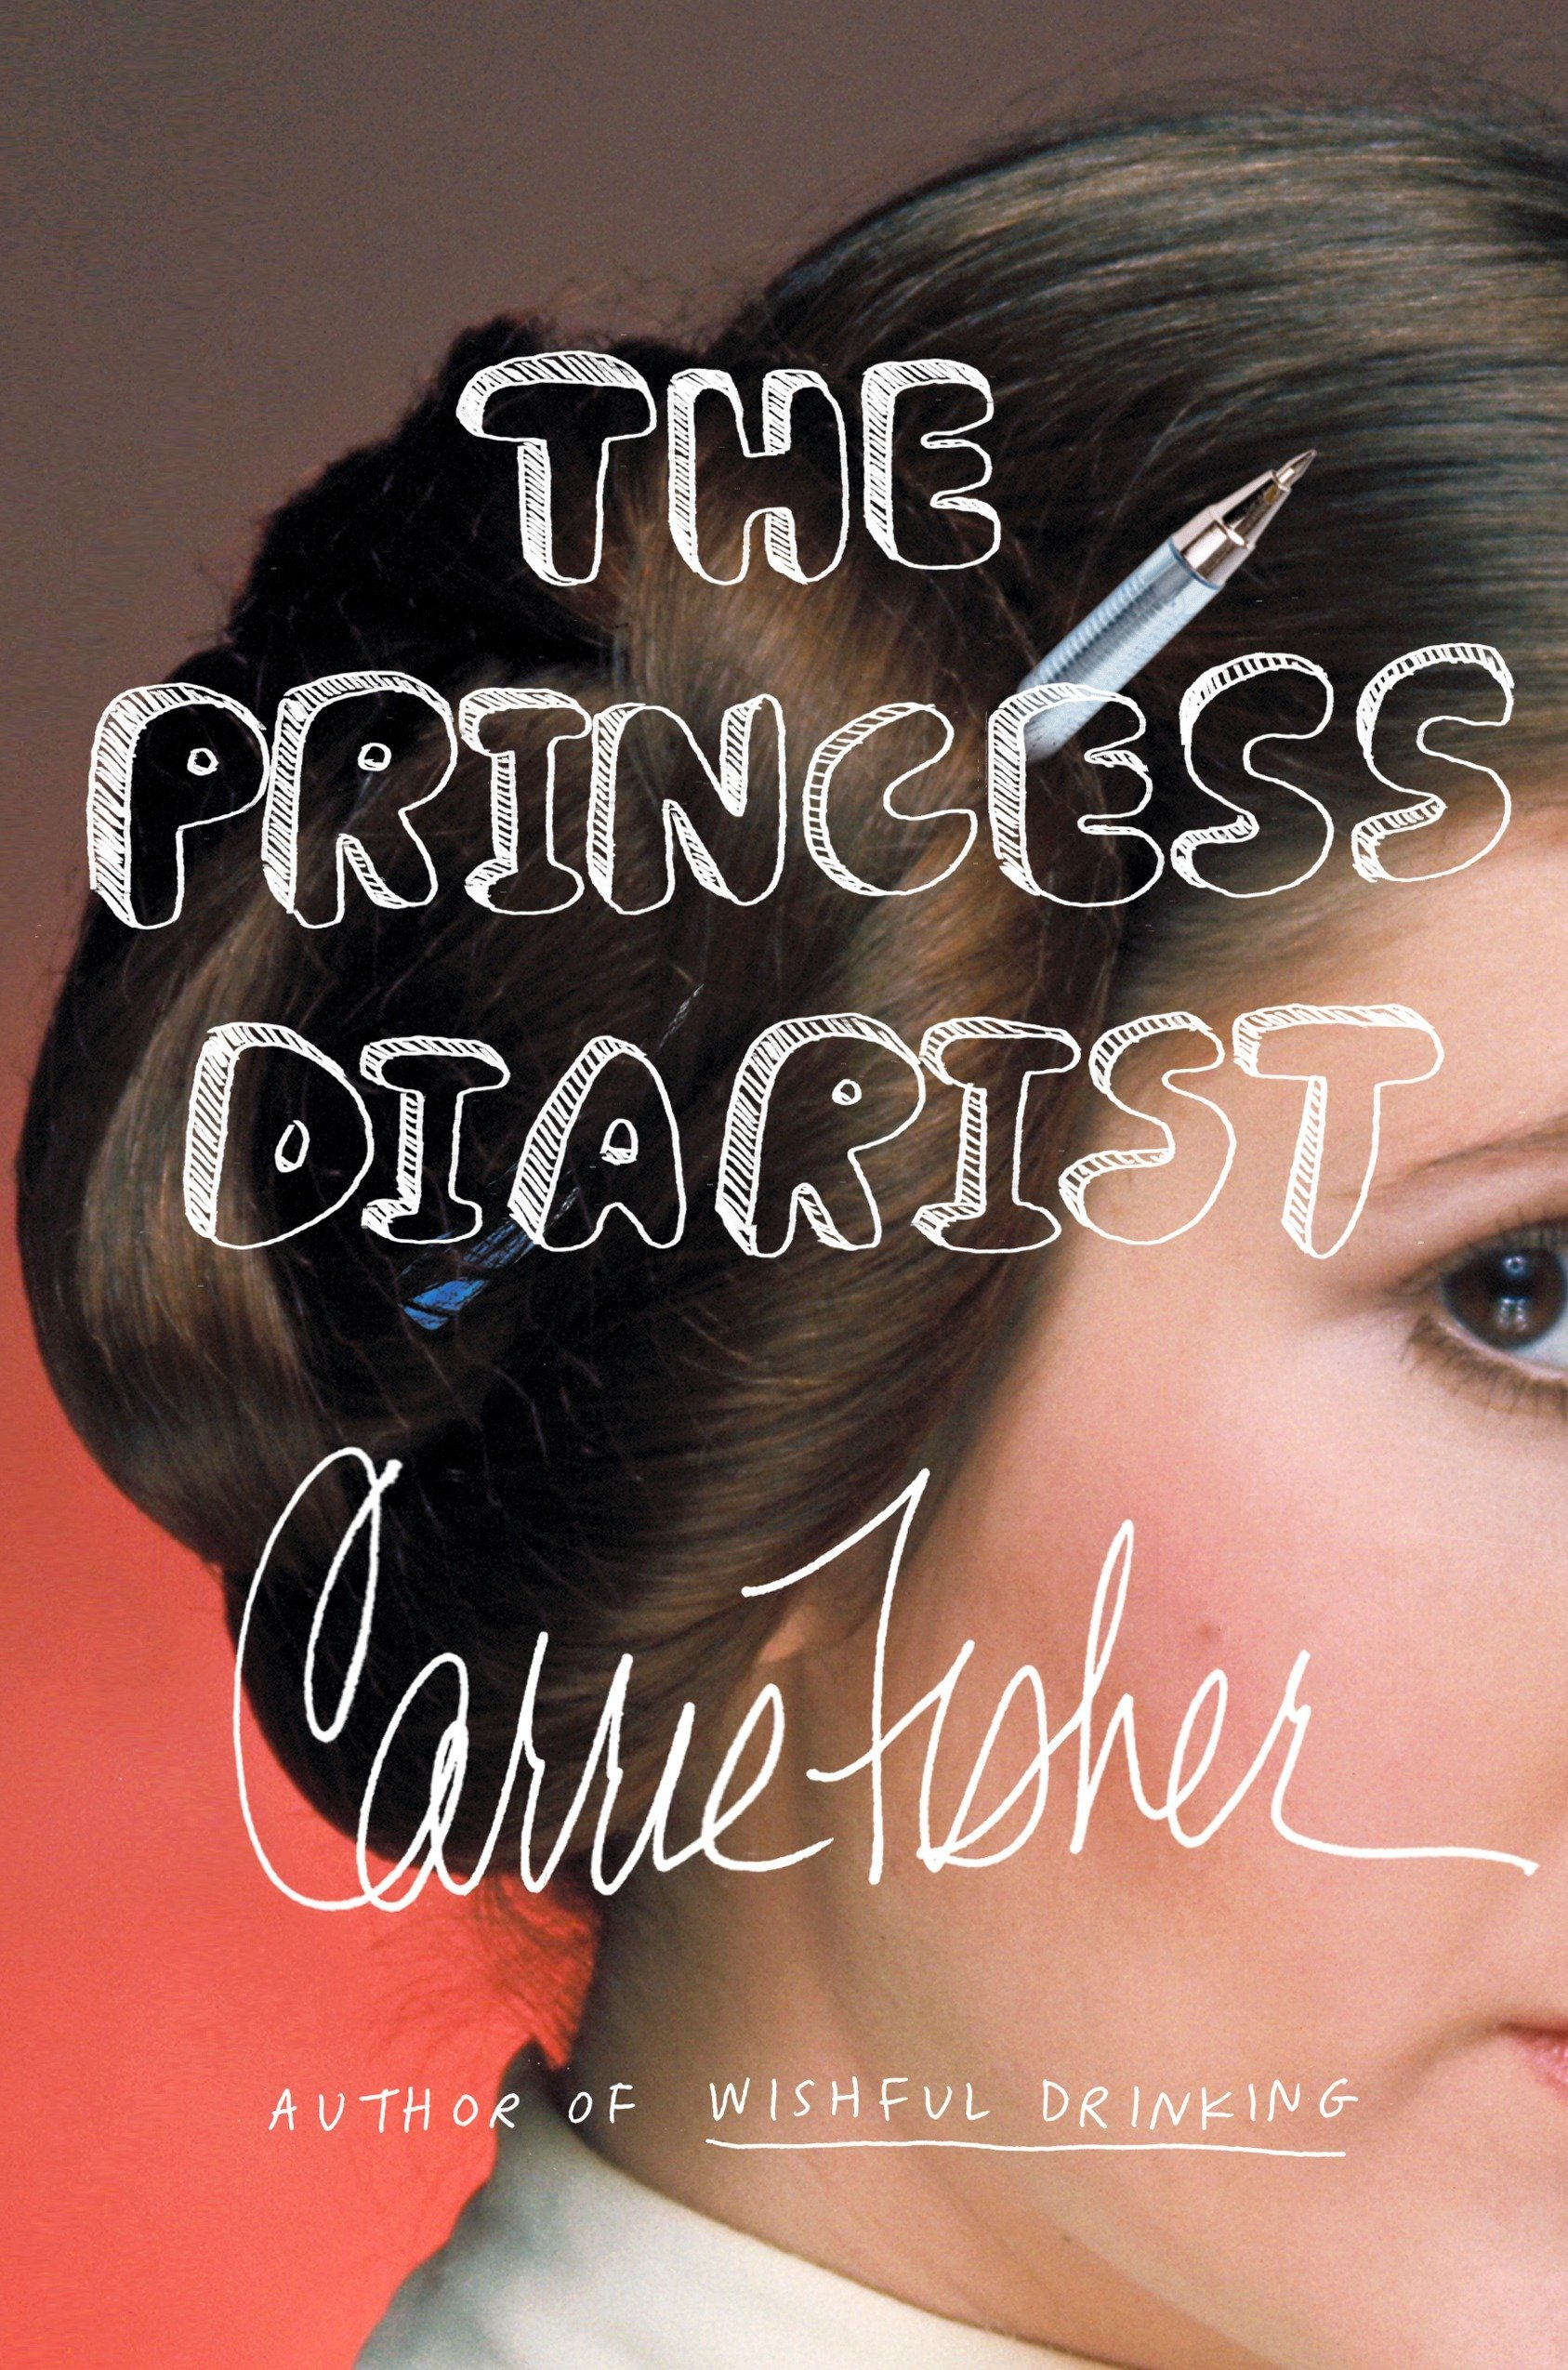 The Princess Diarist: Carrie Fisher: 9780399173592: Amazon.com: Books